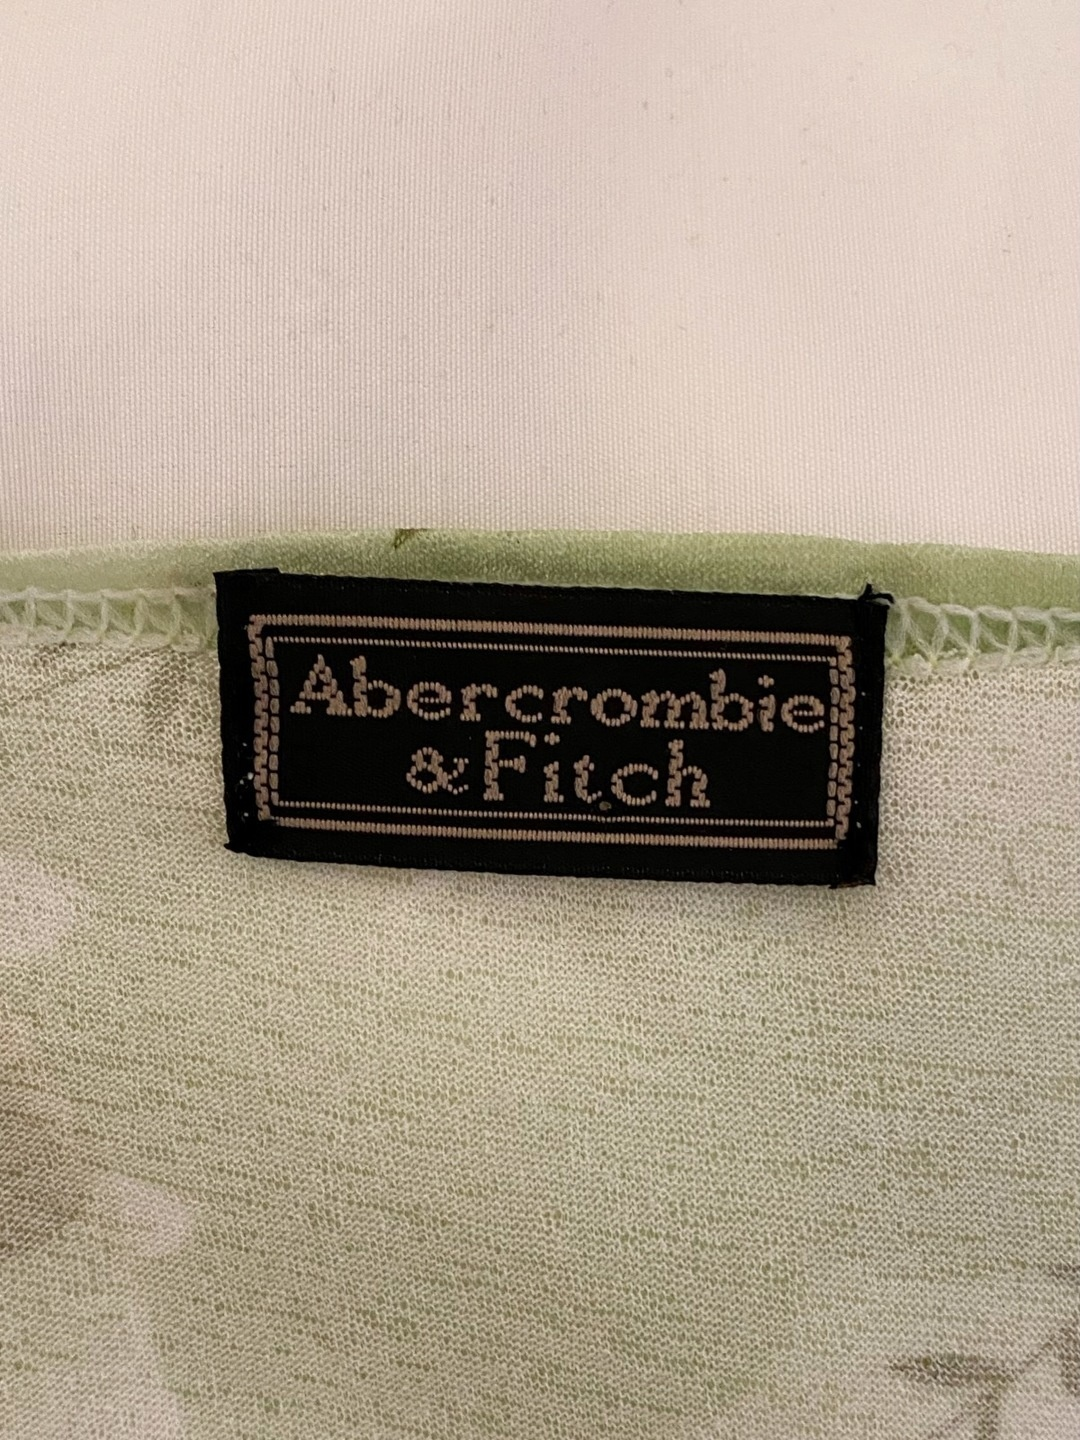 Women's tops & t-shirts - ABERCROMBIE & FITCH photo 4